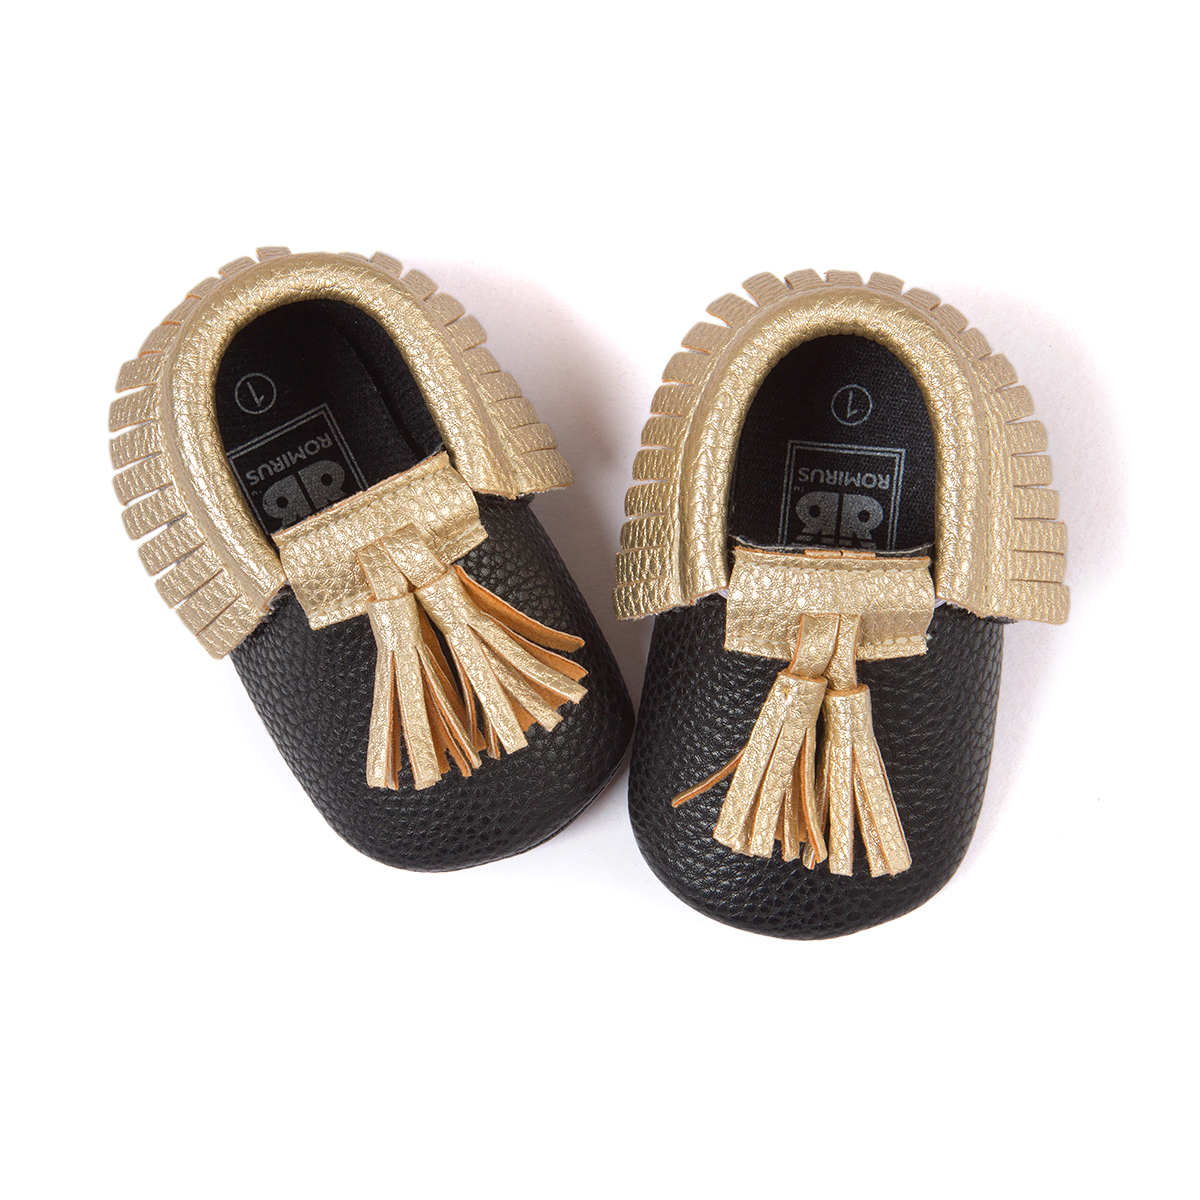 Leather-With-Matte-Fringed-Baby-Moccasins-Toddler-Shoes-Baby-Stripe-Tassel-Infant-Newborn-Girls-Shoes-First-Walker-2219-4